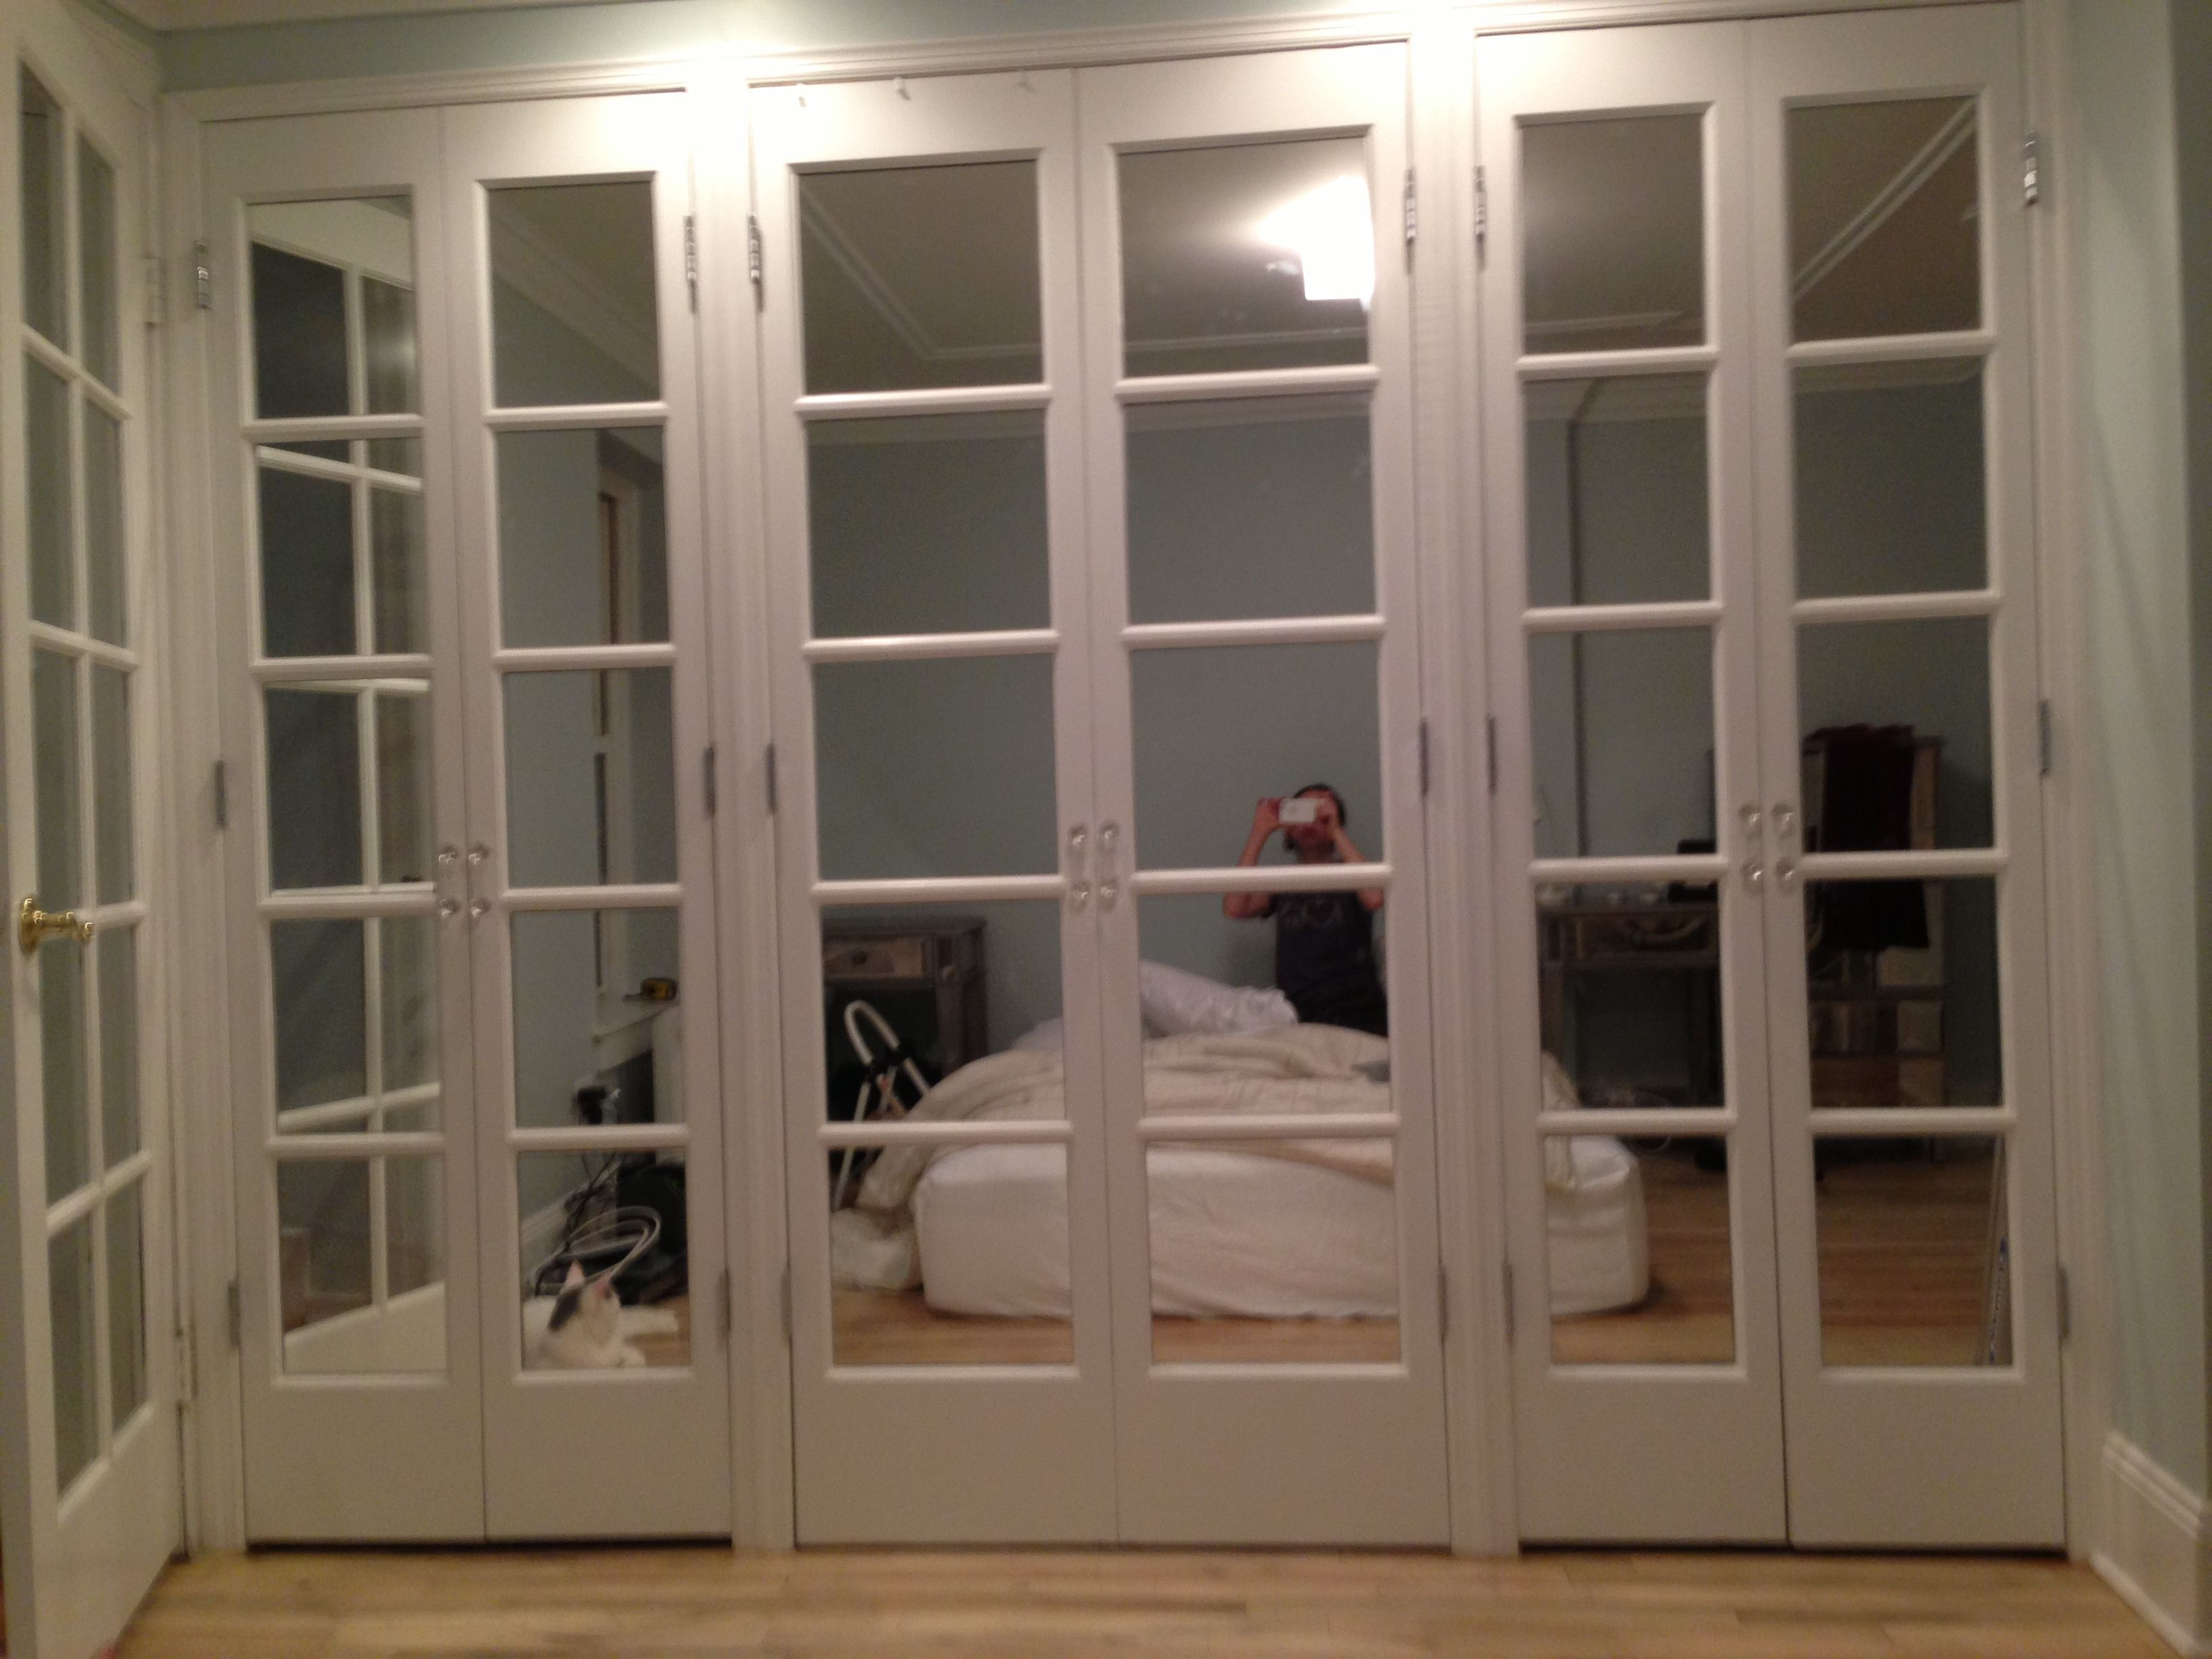 Mirrored French doors in bedroom | Bedroom | French closet ...